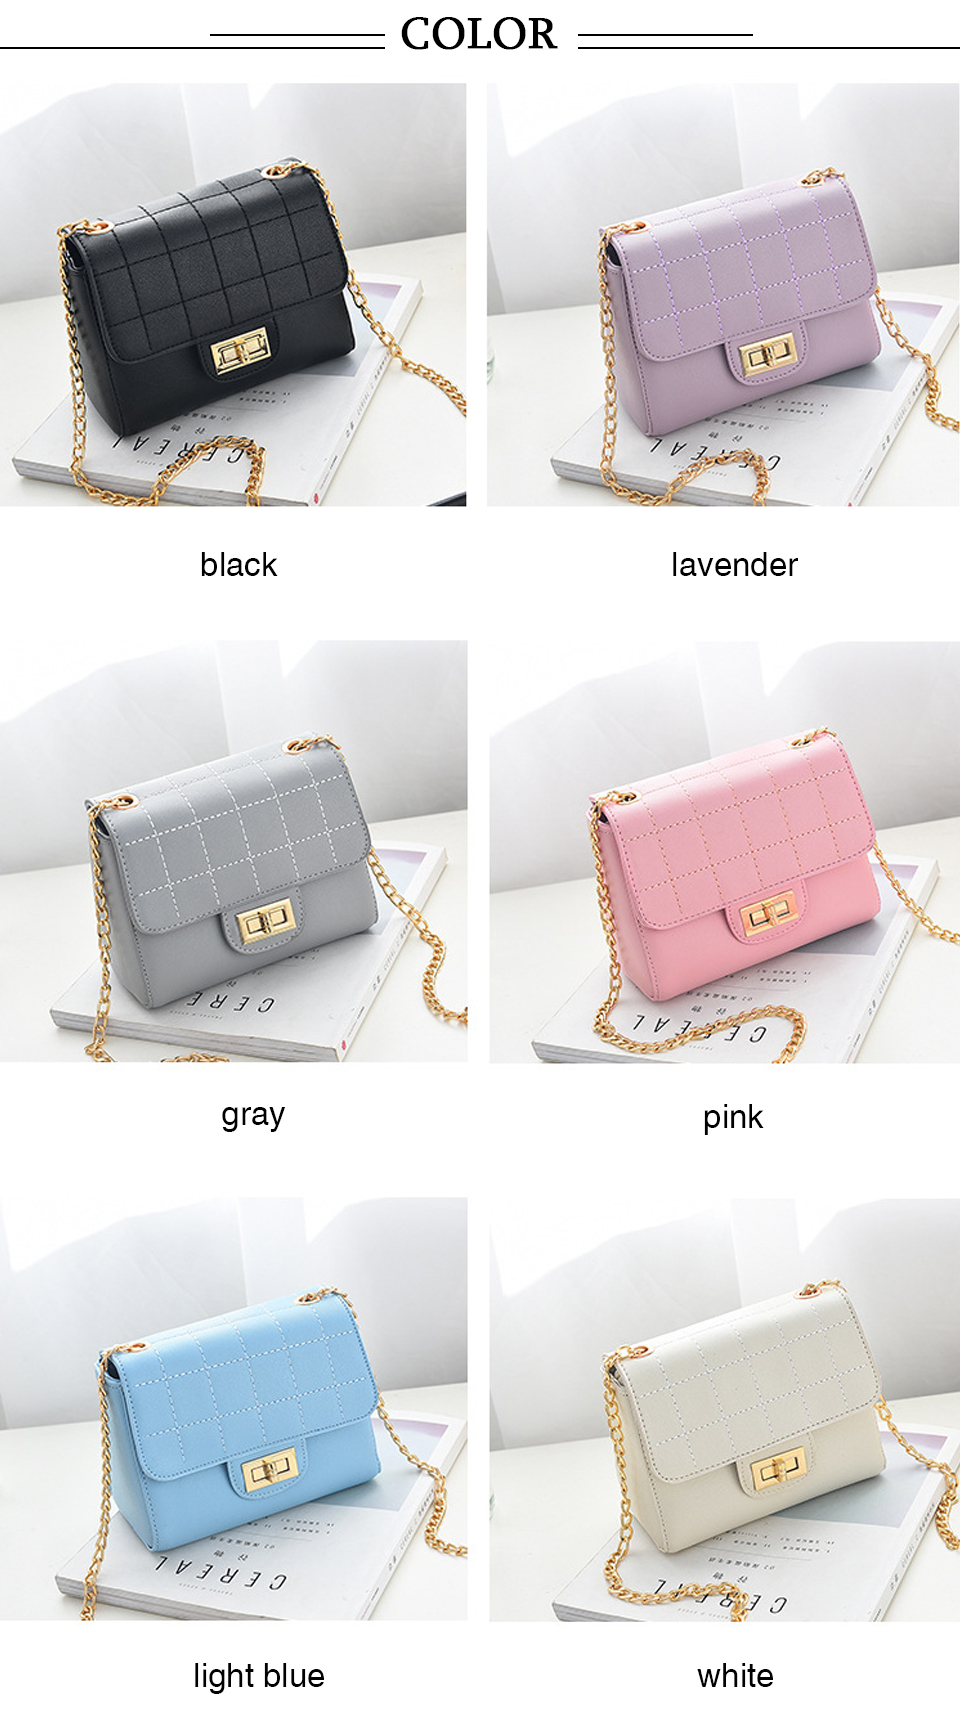 ALCEVR Fashion Flap Shoulder Crossbody Bags High Quality PU Leather Women Messenger Bags Designer Brand Ladies Clutch Hand Bags